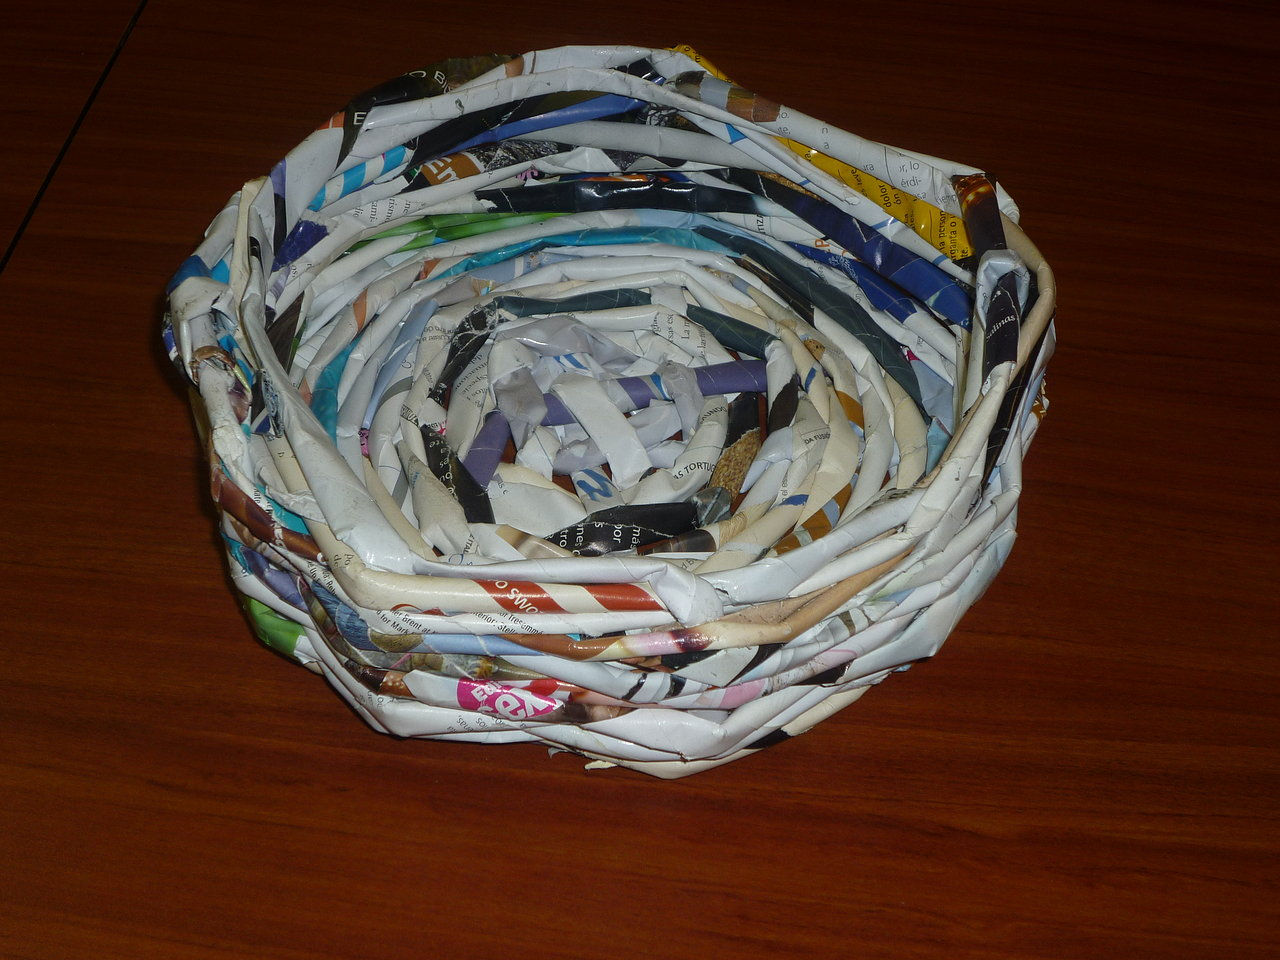 Earth created by alejandragarcia6 based on my - Como hacer canastas de papel ...